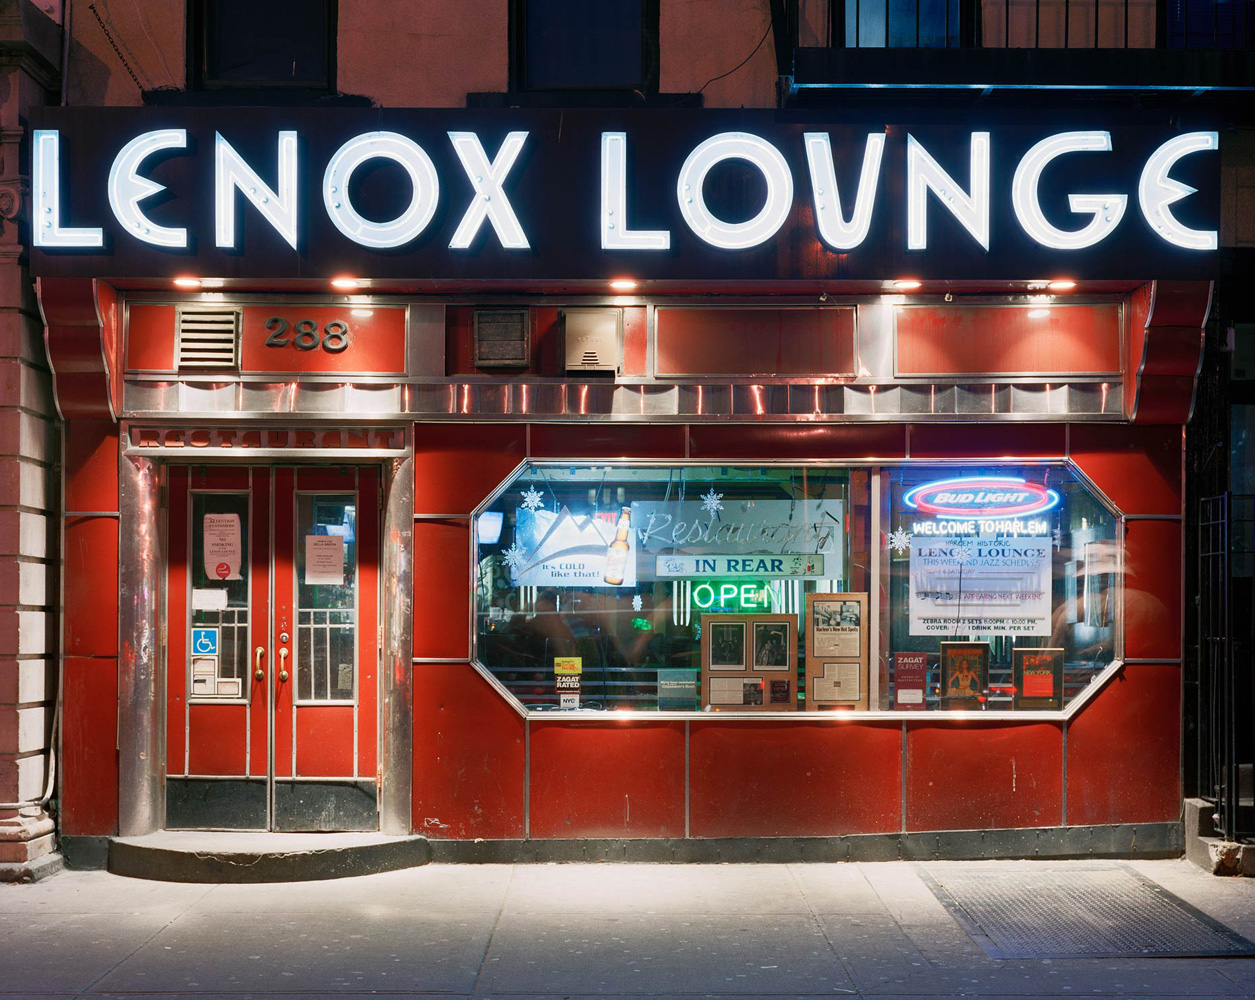 enox Lounge, 200 Lenox Avenue, Harlem, New York, 2005-2007, by David Leventi. Print on Dibond of bar exterior from the front with signage